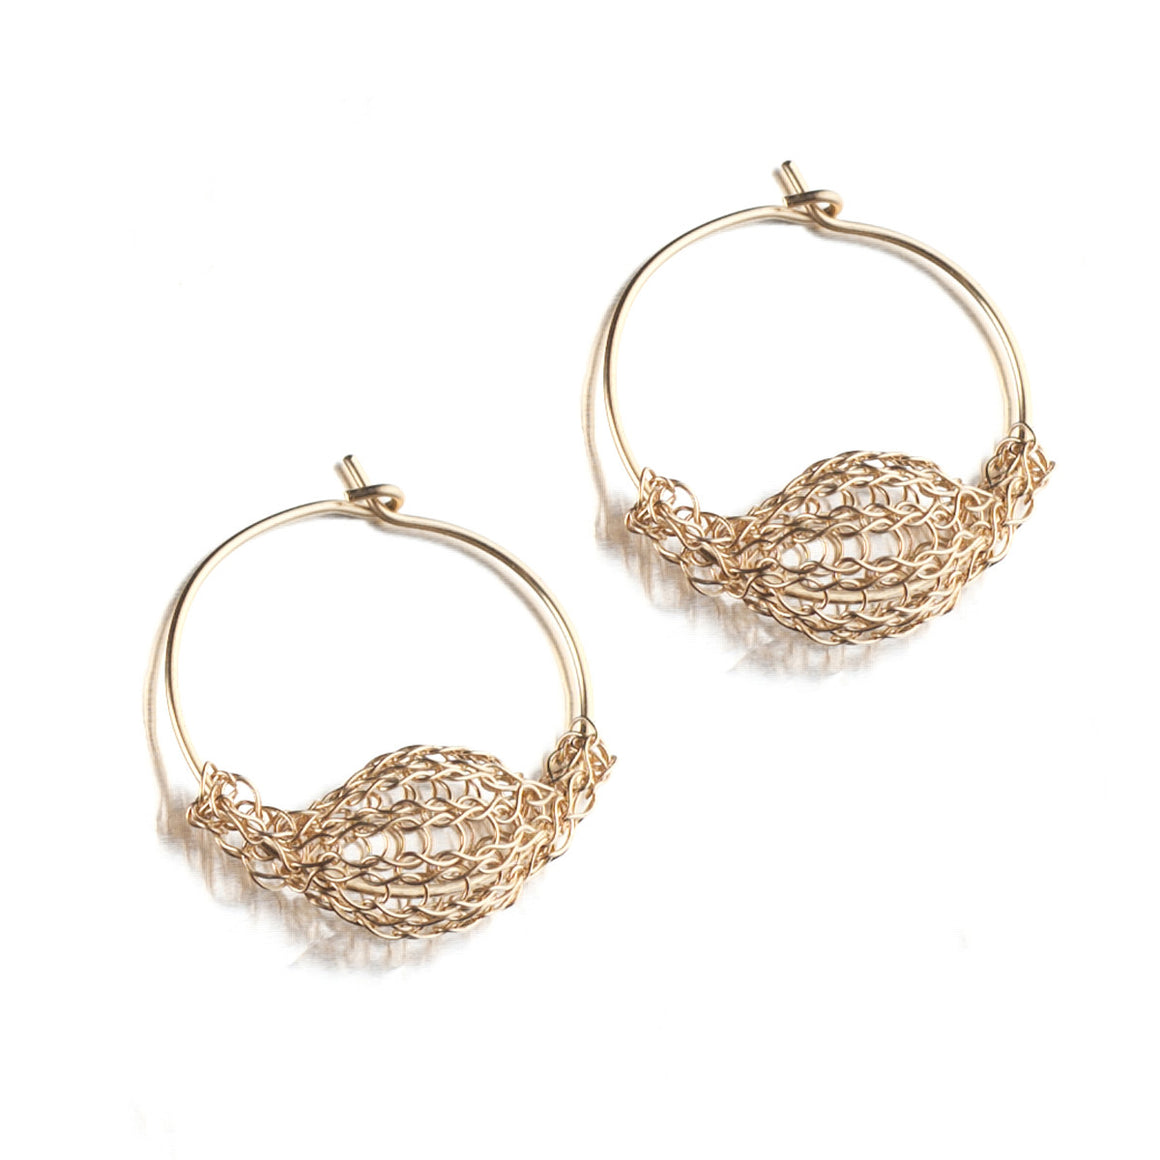 SMALL Gold Hoop Earrings - Yooladesign